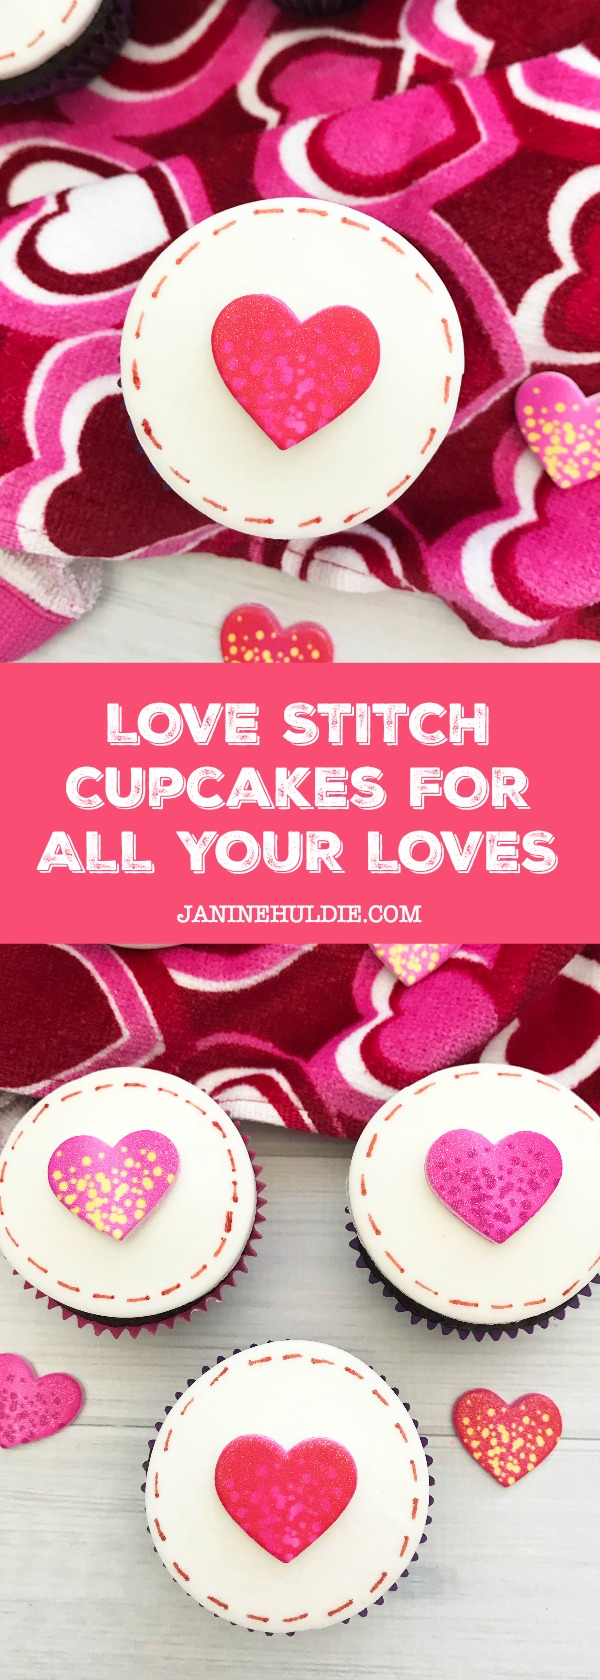 Love Stitch Cupcakes, This Mom's Confessions